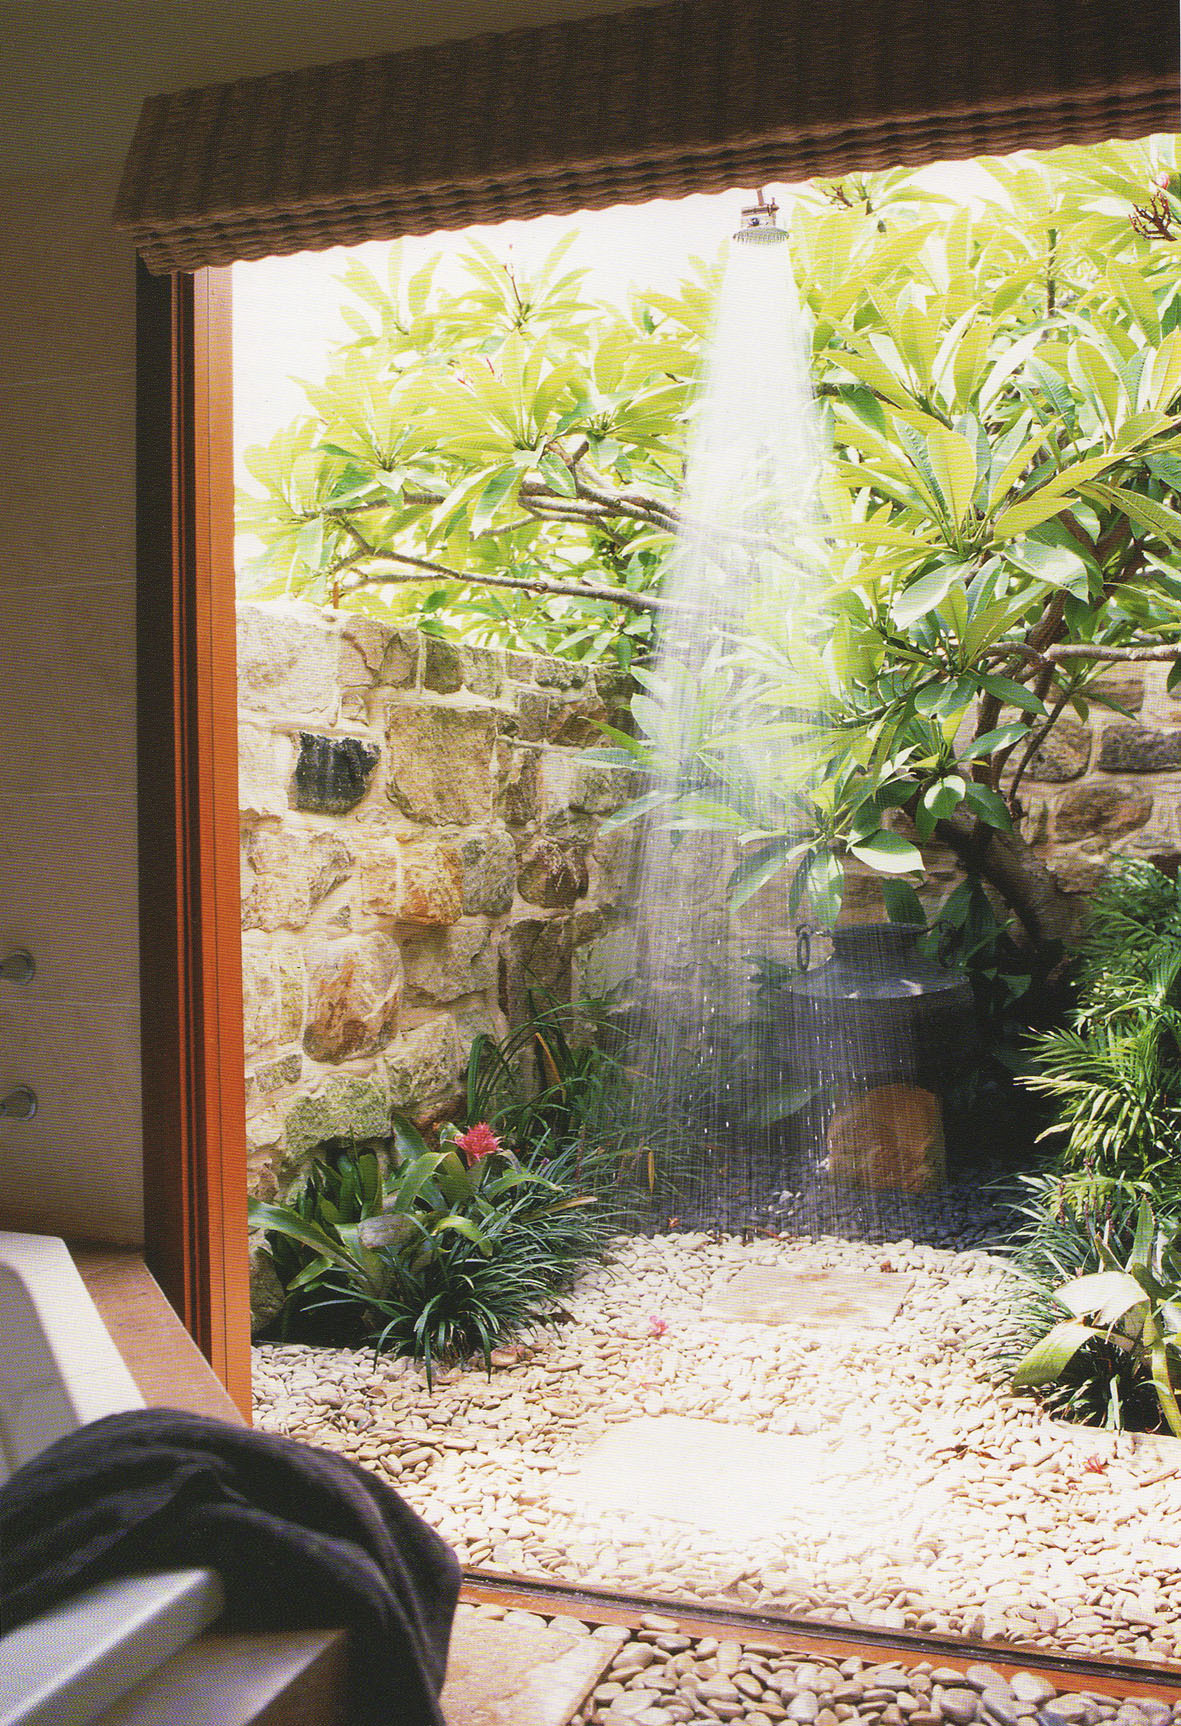 Outdoor Shower Tumblr Beach House Life 43style A Private Outdoor Shower With A